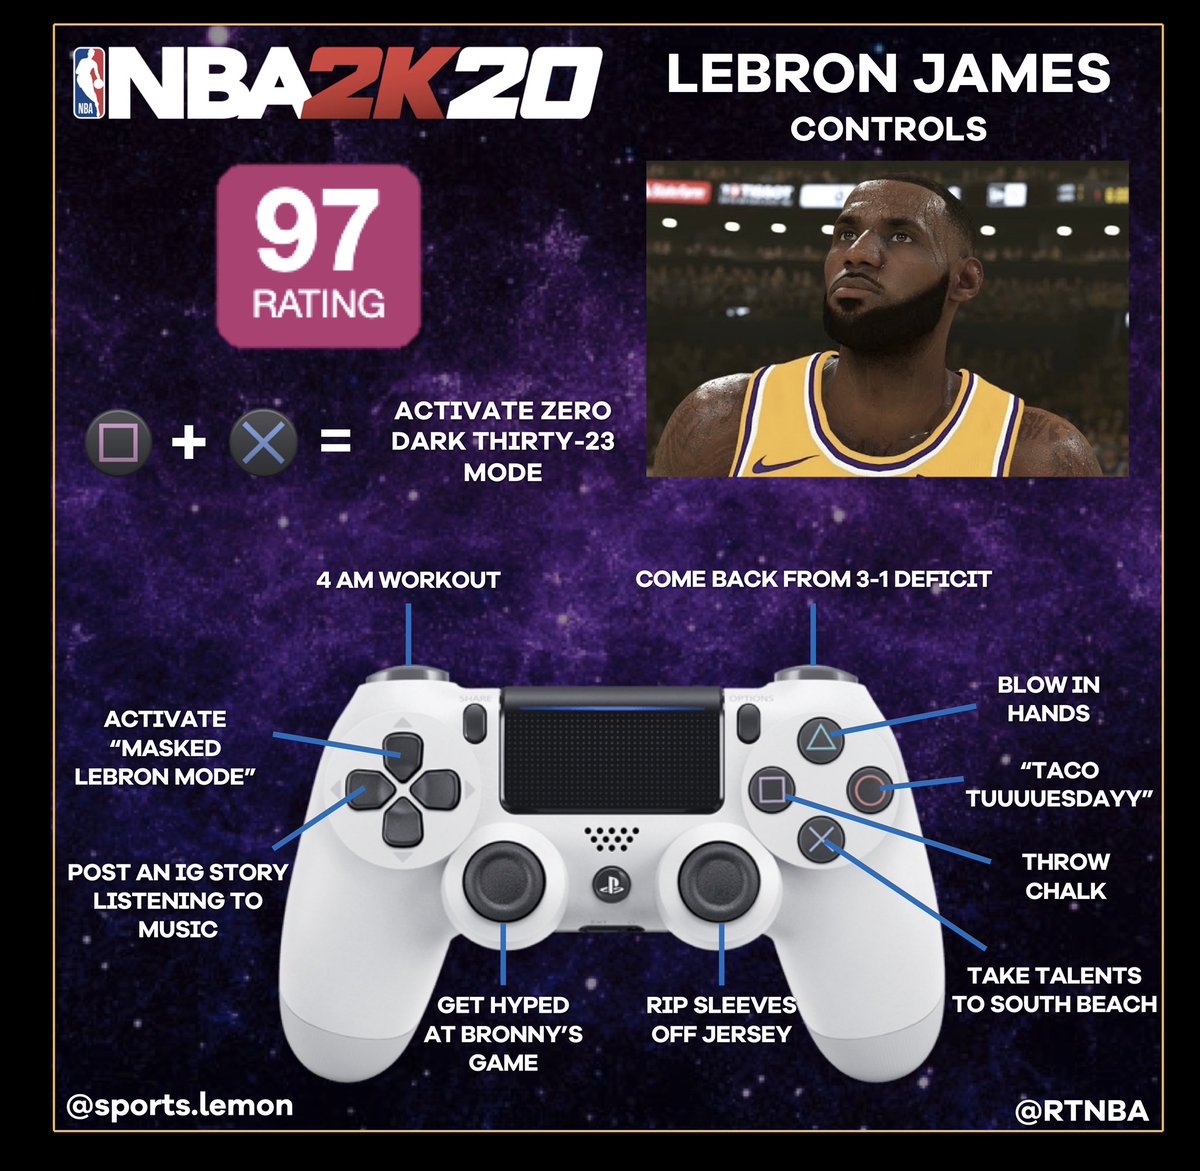 NBA 2K20 LeBron James controls😂